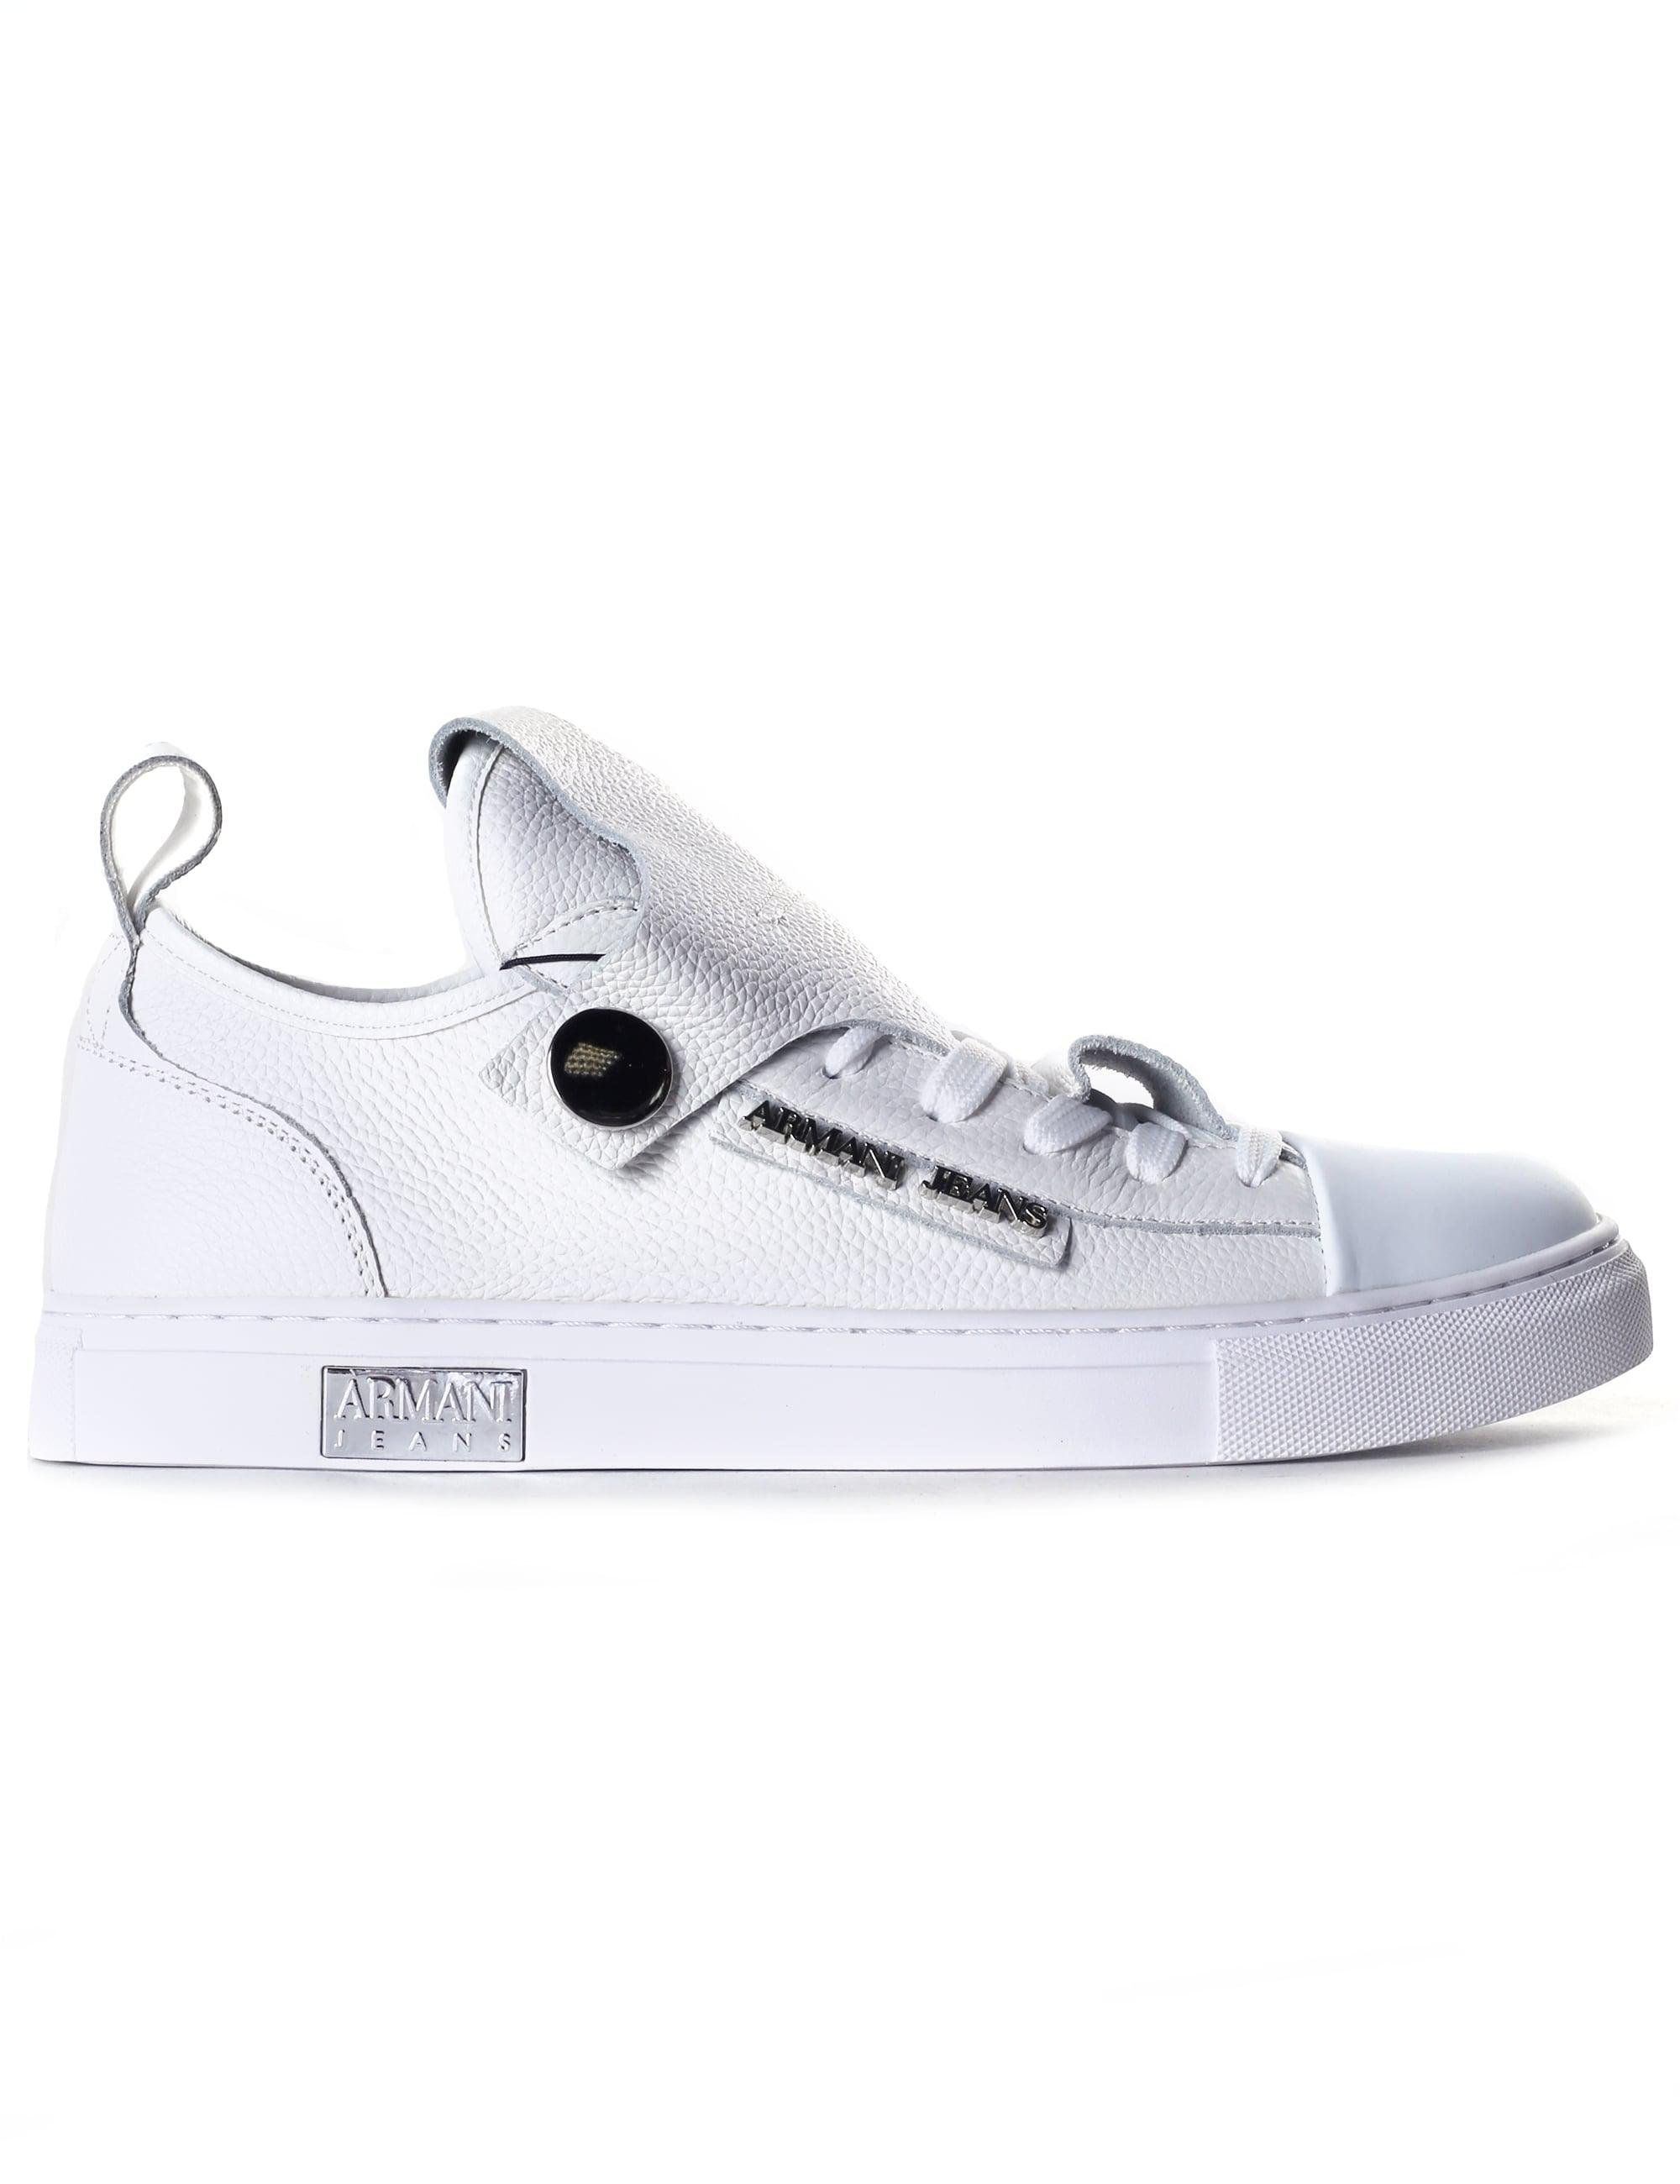 Jeans In Lyst Low Top Sneaker Armani White odCtshQxrB